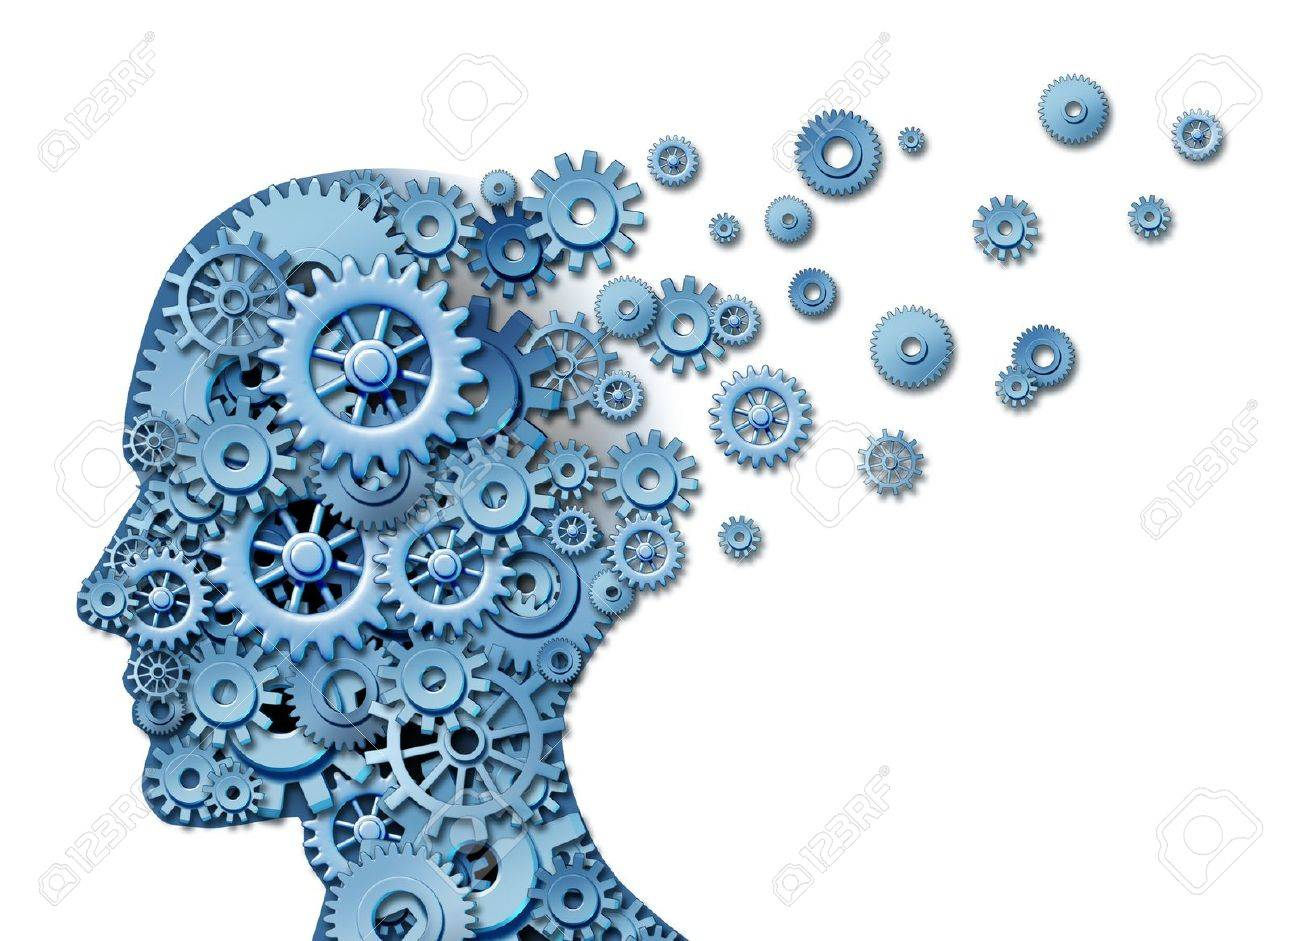 Brain loss and losing memory and intelligence due to neurological trauma and head injury or alzheimers disease caused by aging with gears and cogs in the shape of a human face showing cognitive loss and thinking function - 12882373